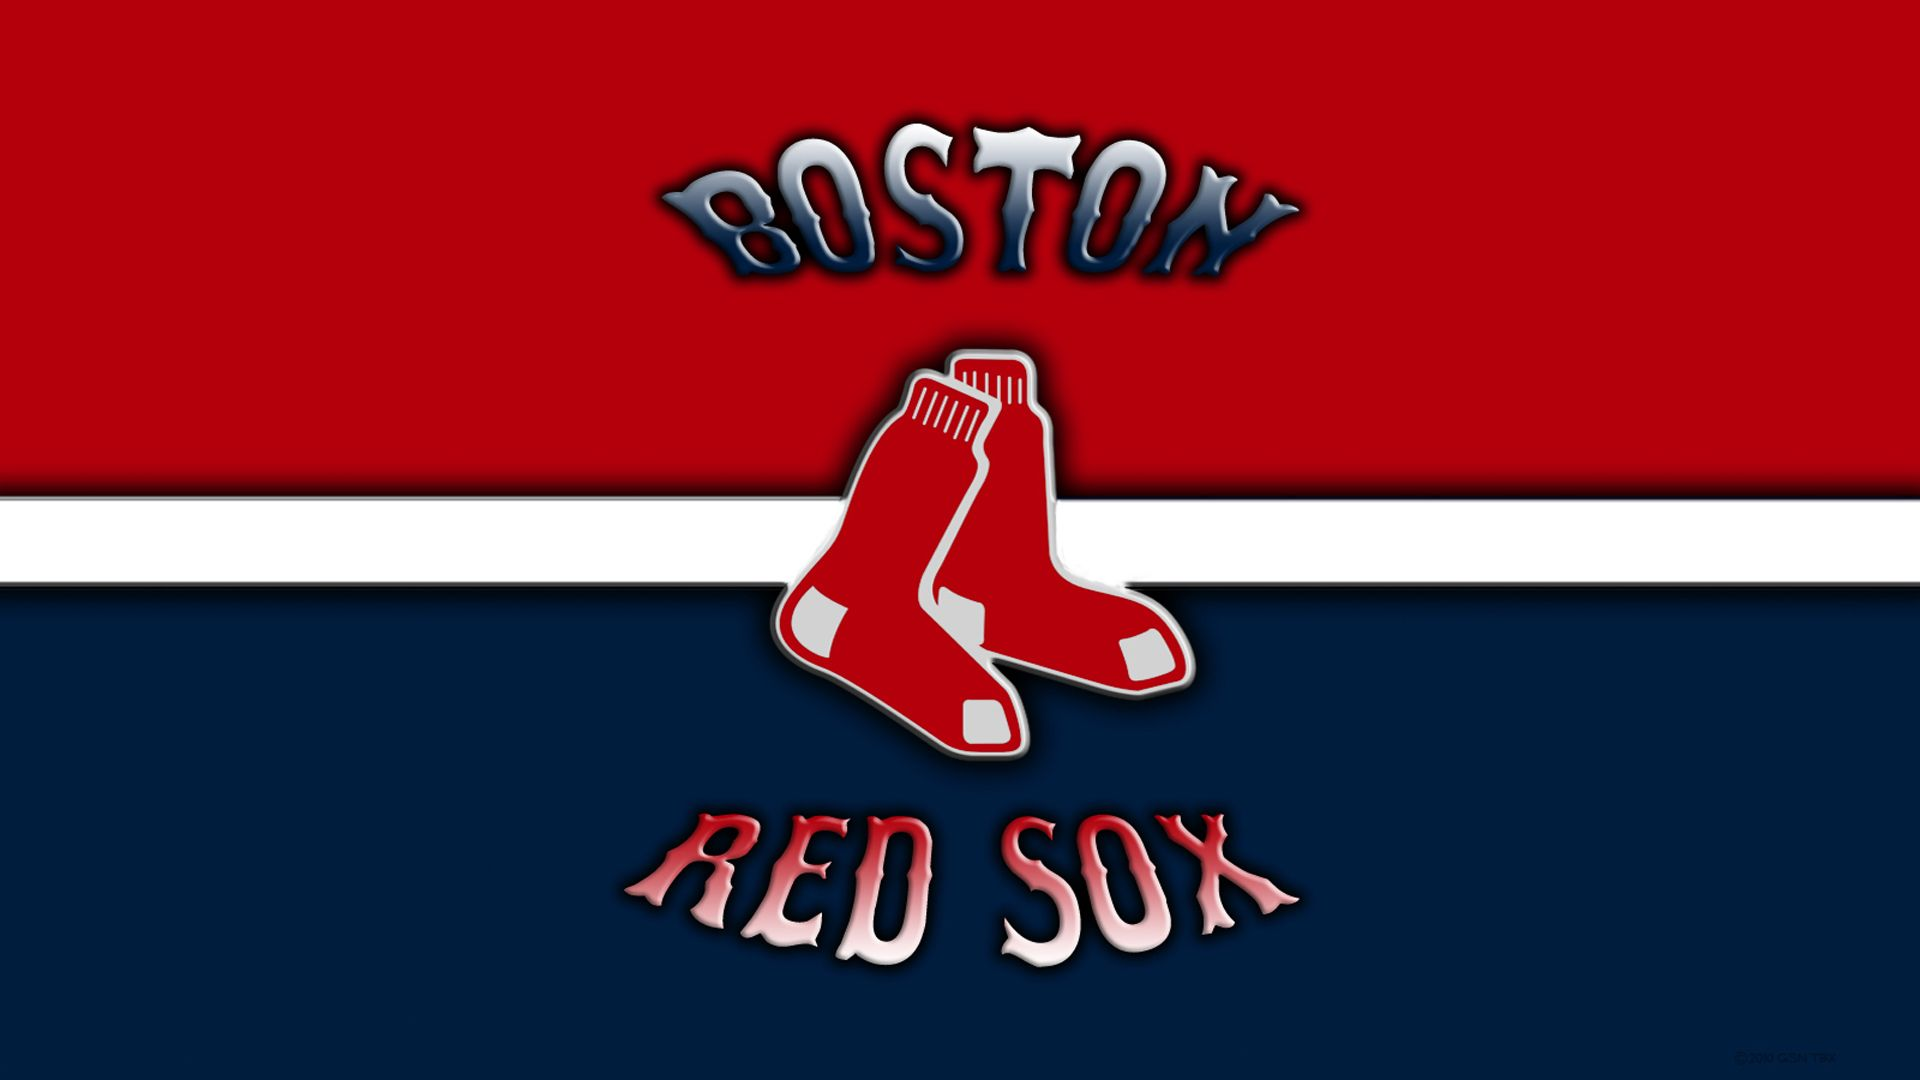 HD Boston Red Sox 4k Background for Gad s